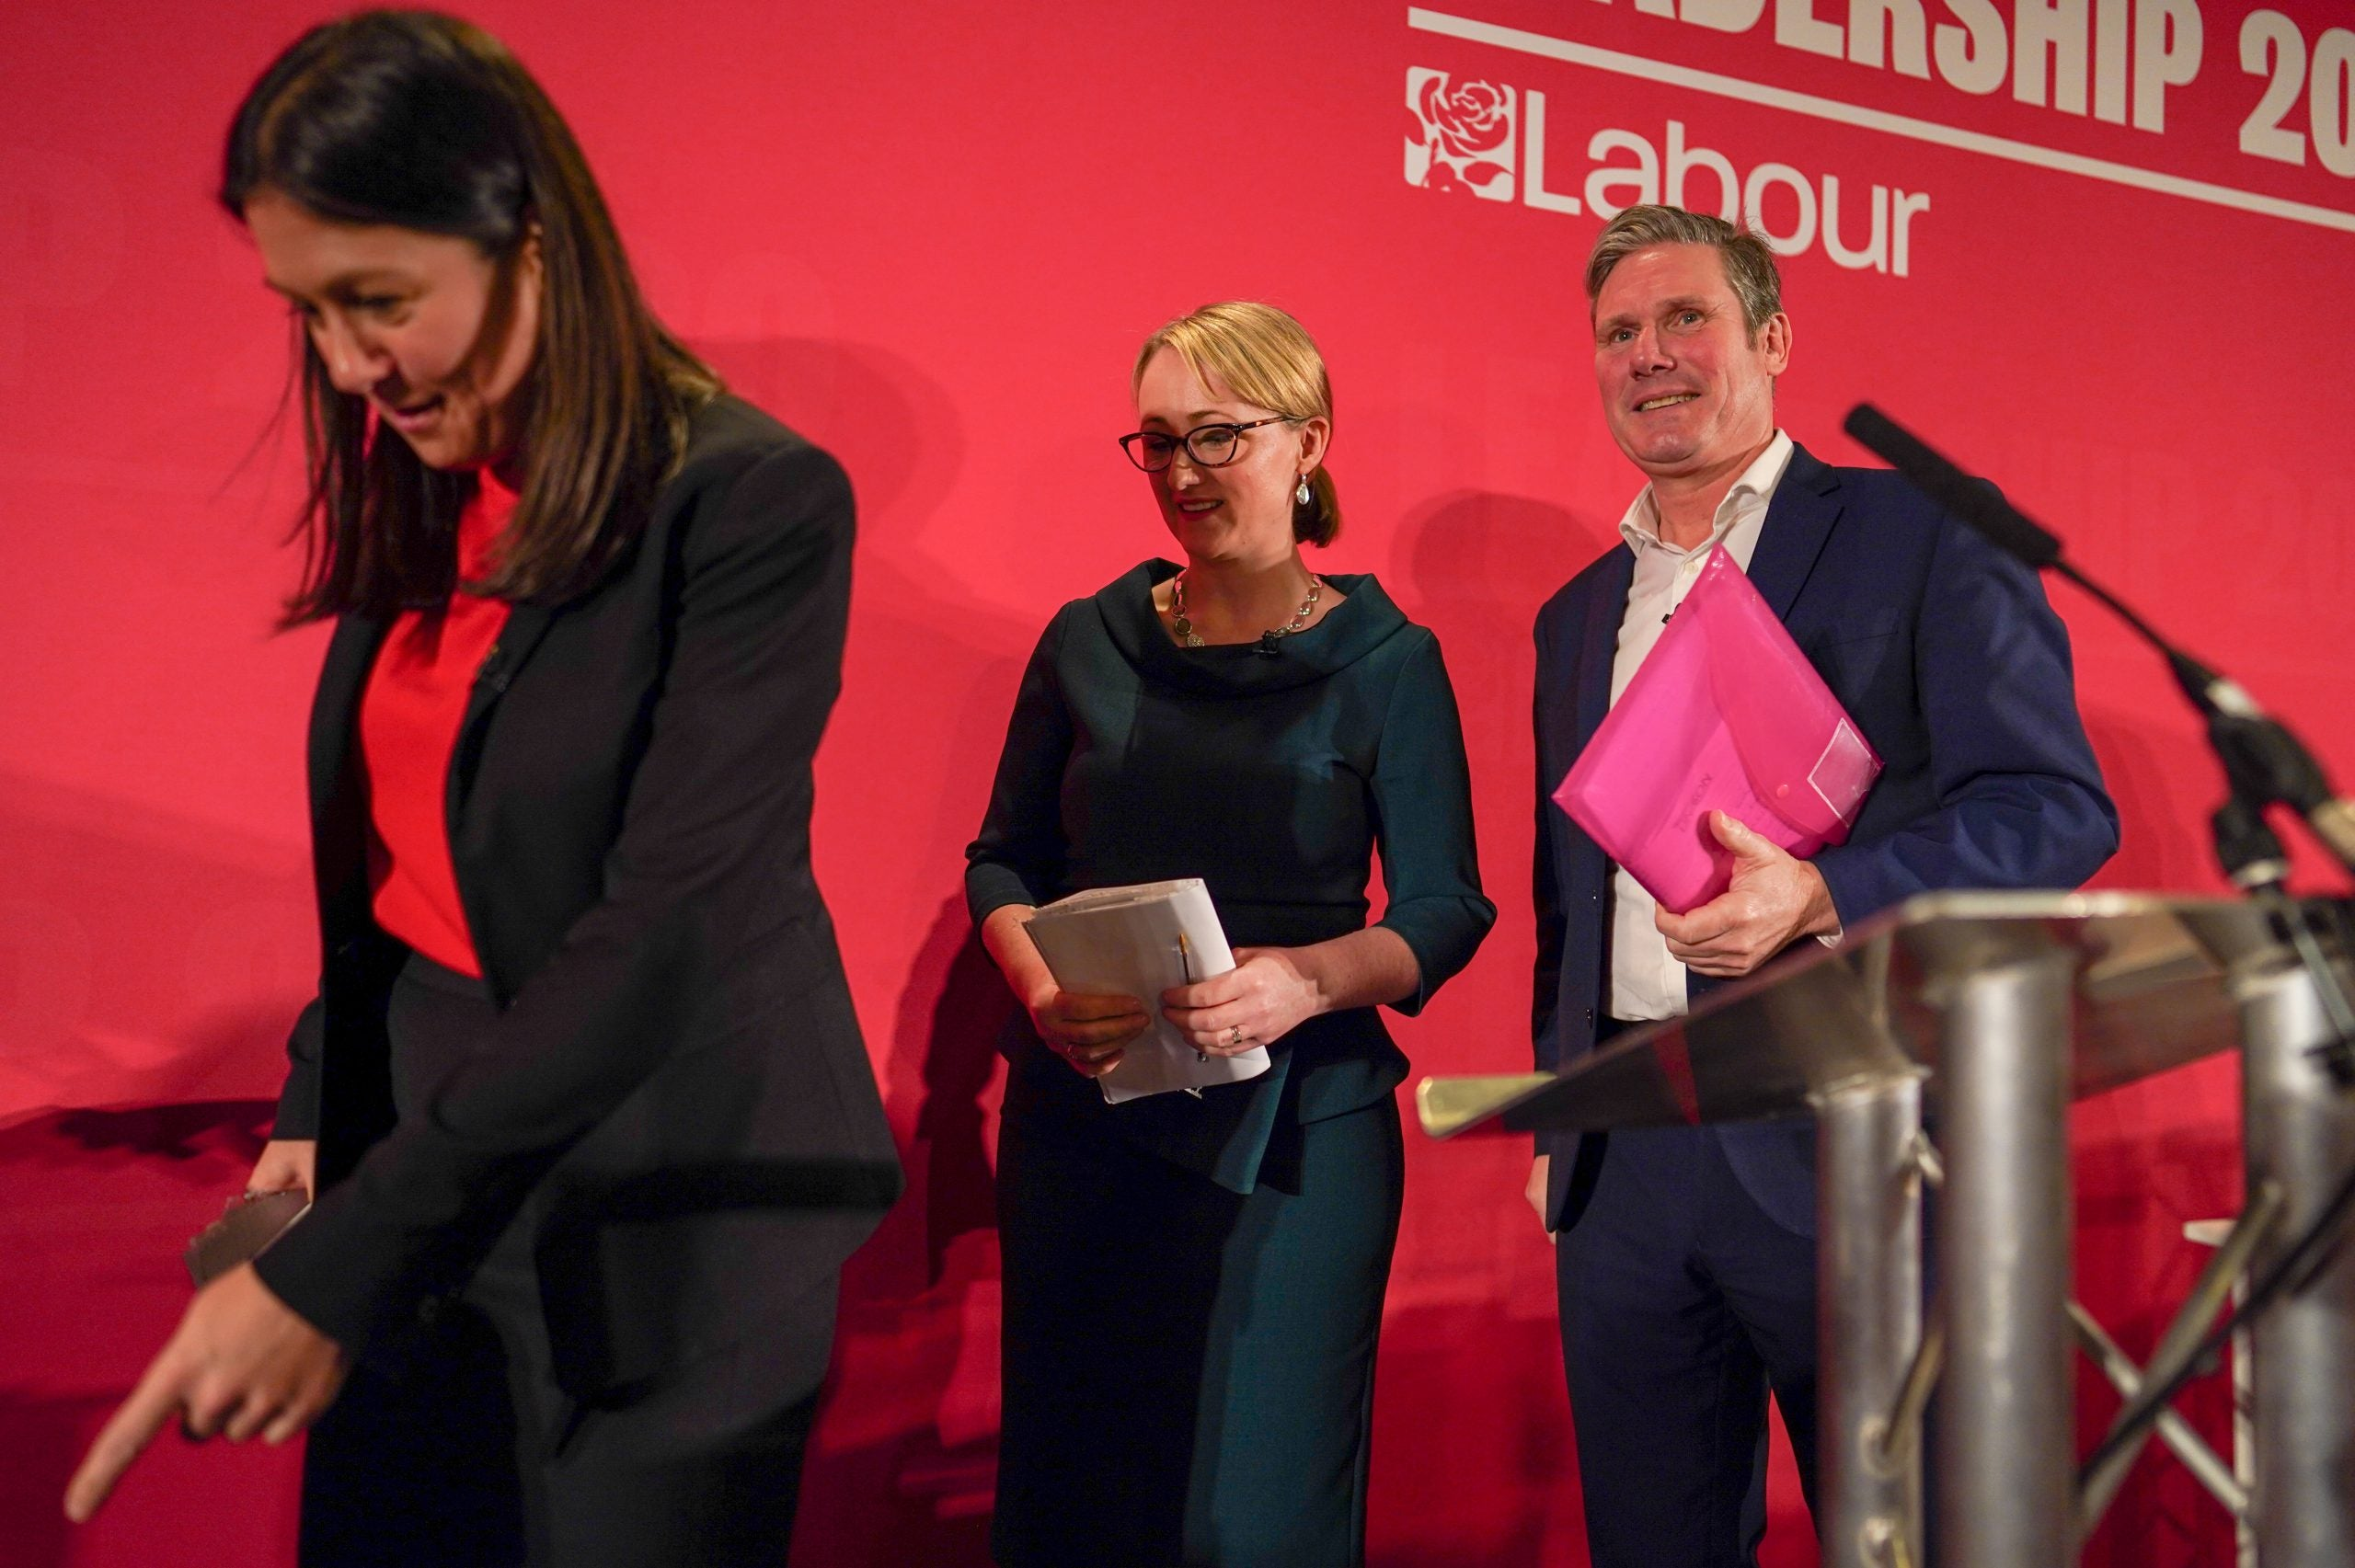 To win again, Labour needs both Starmerism and Nandyism